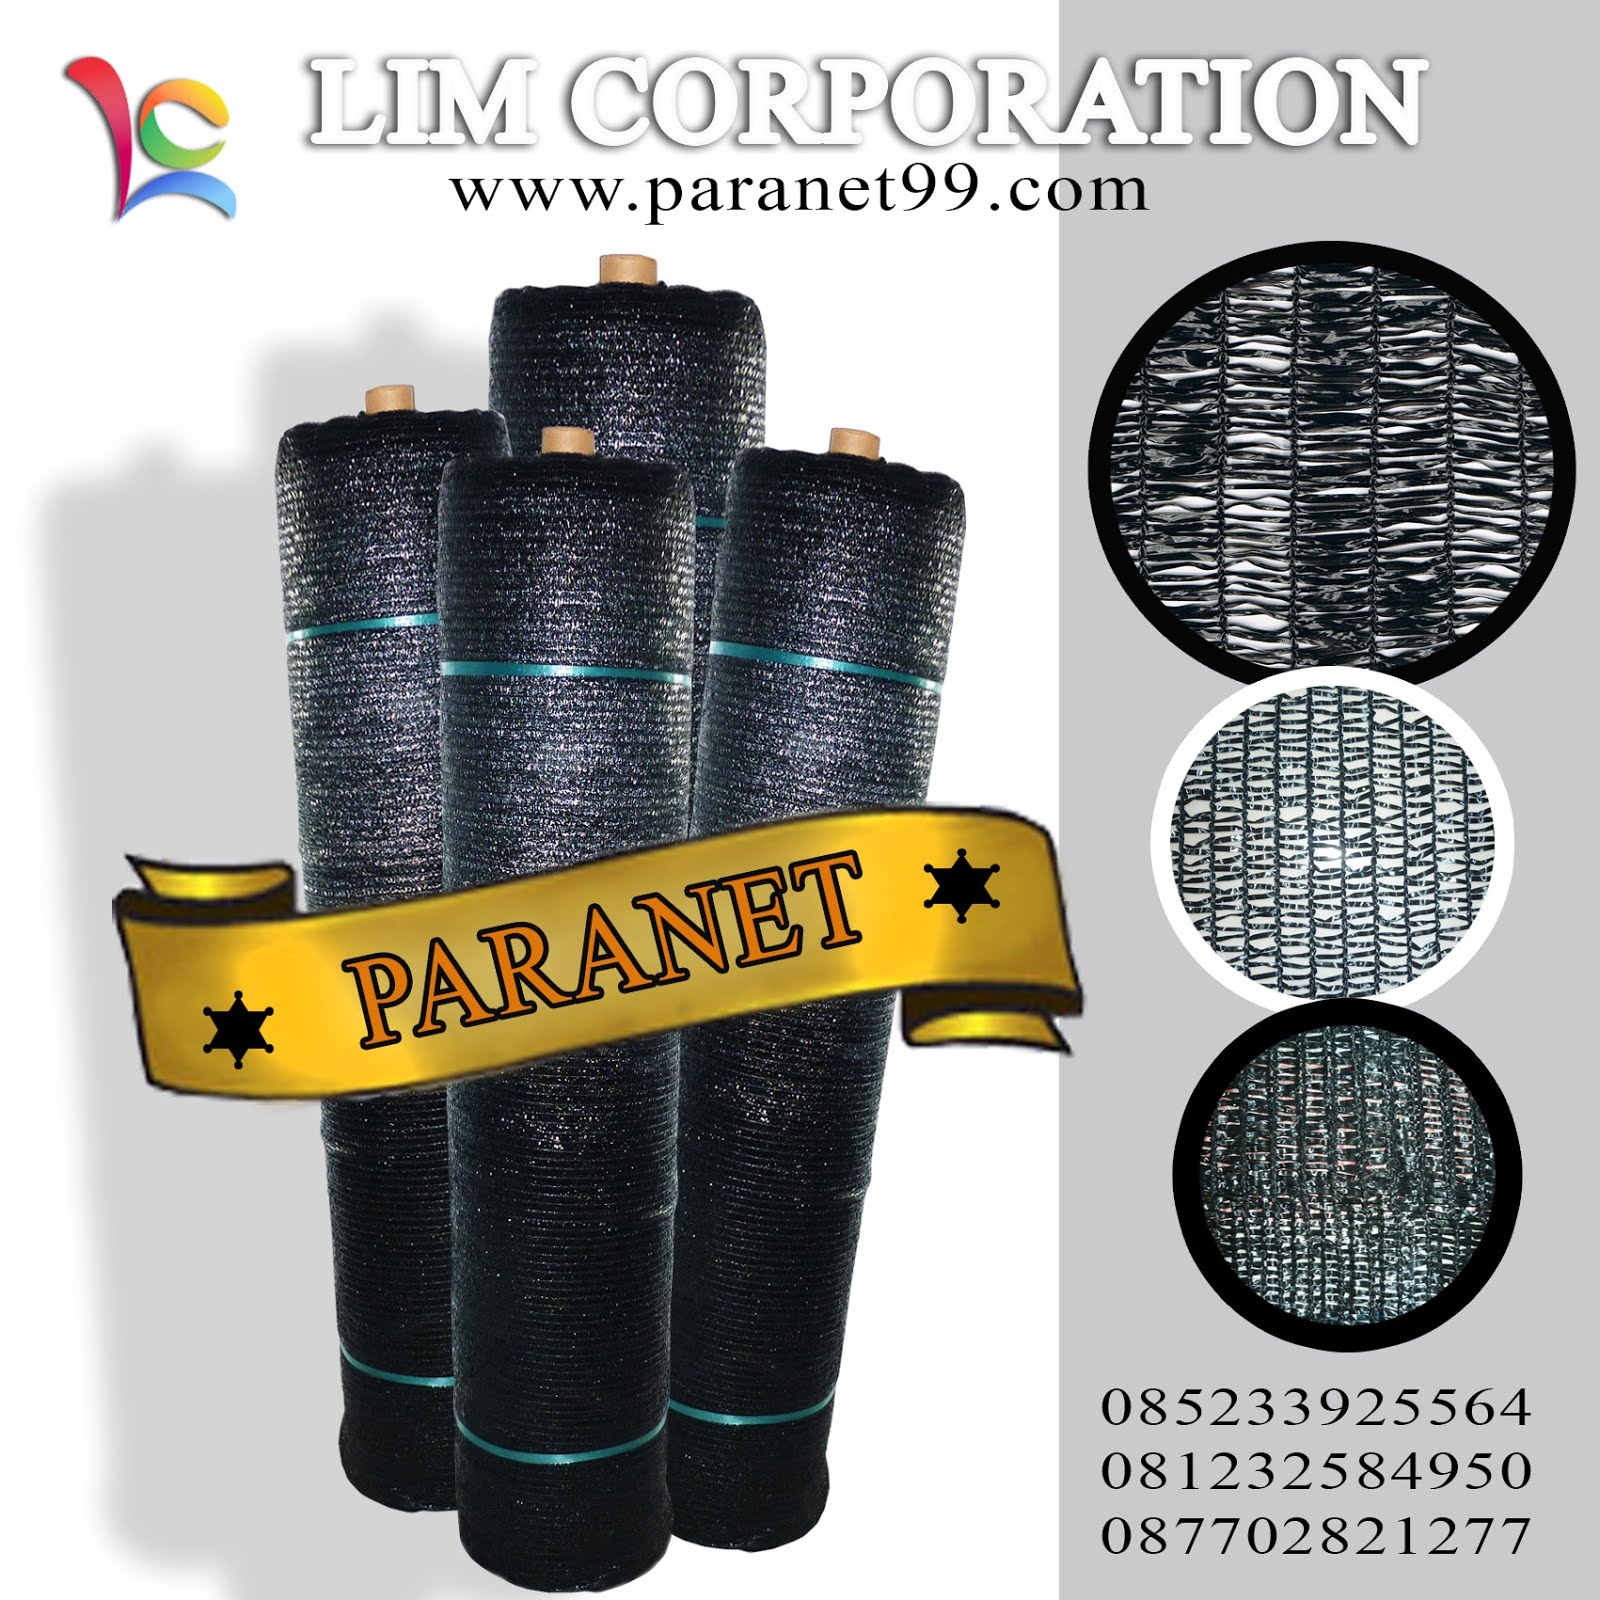 Paranet-Polynet-Insectnet